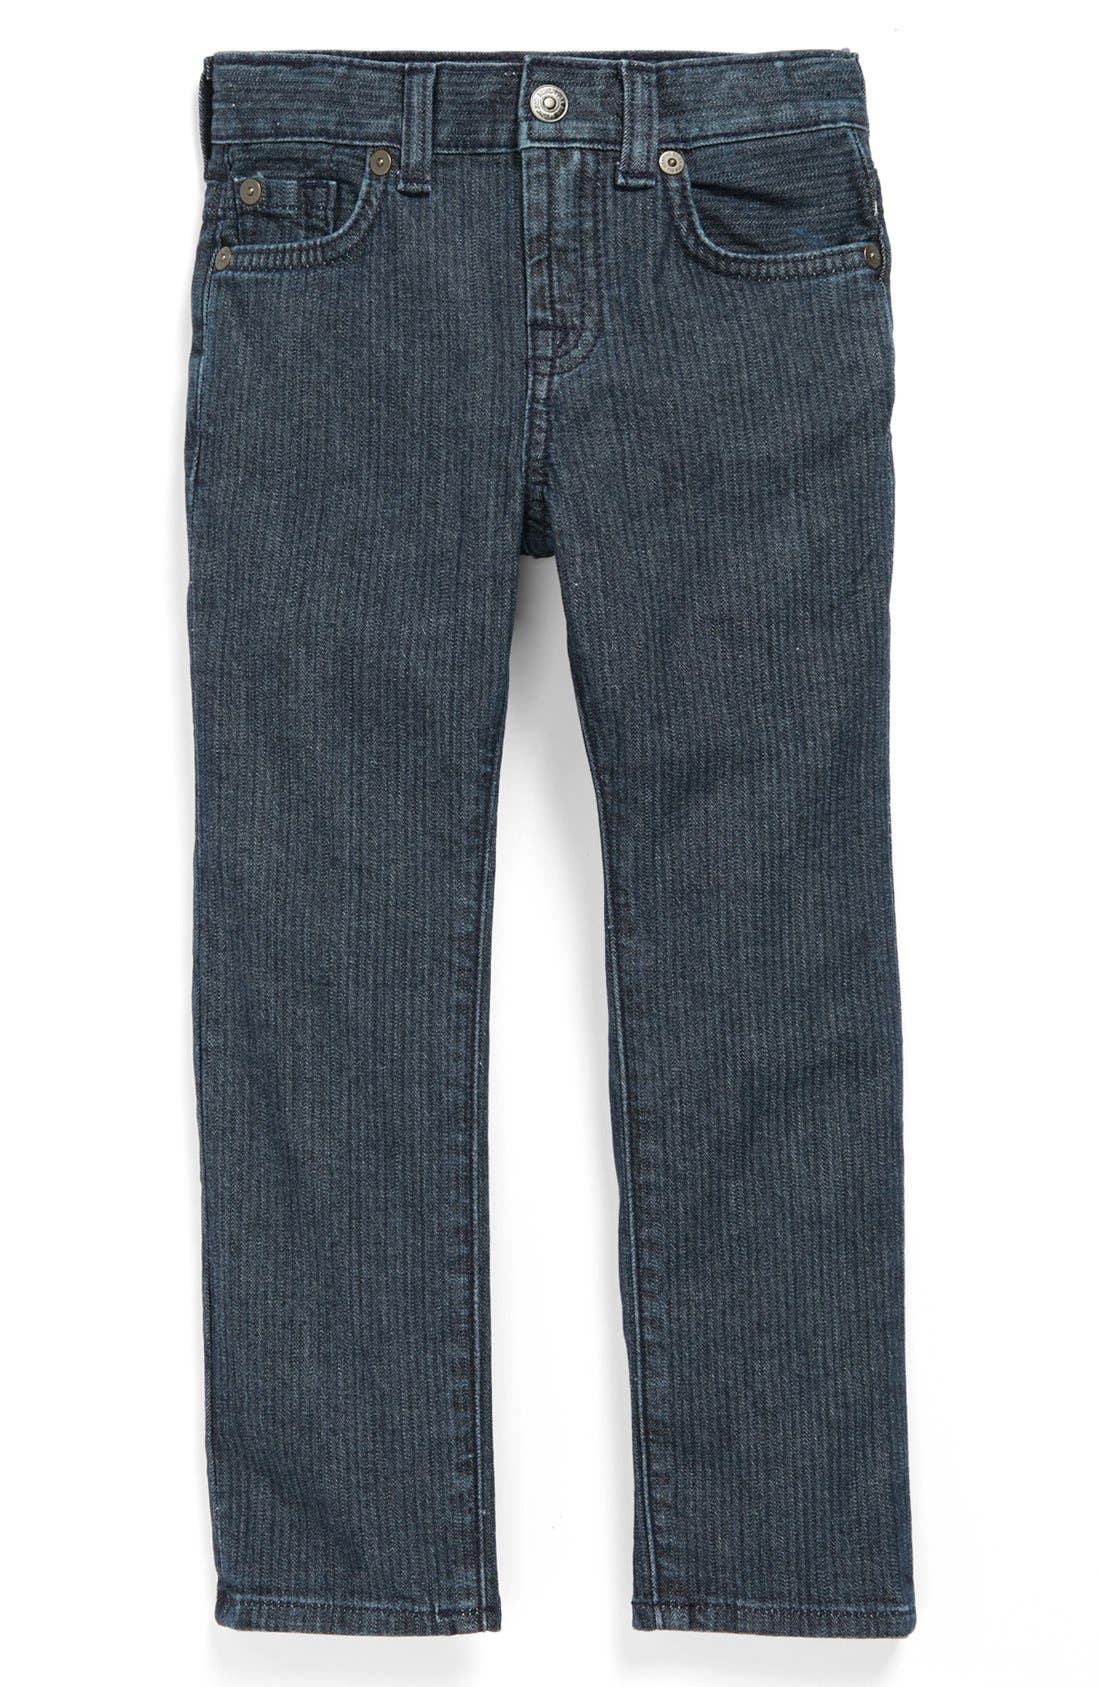 Alternate Image 2  - 7 For All Mankind® 'Slimmy' Herringbone Slim Fit Jeans (Toddler Boys)